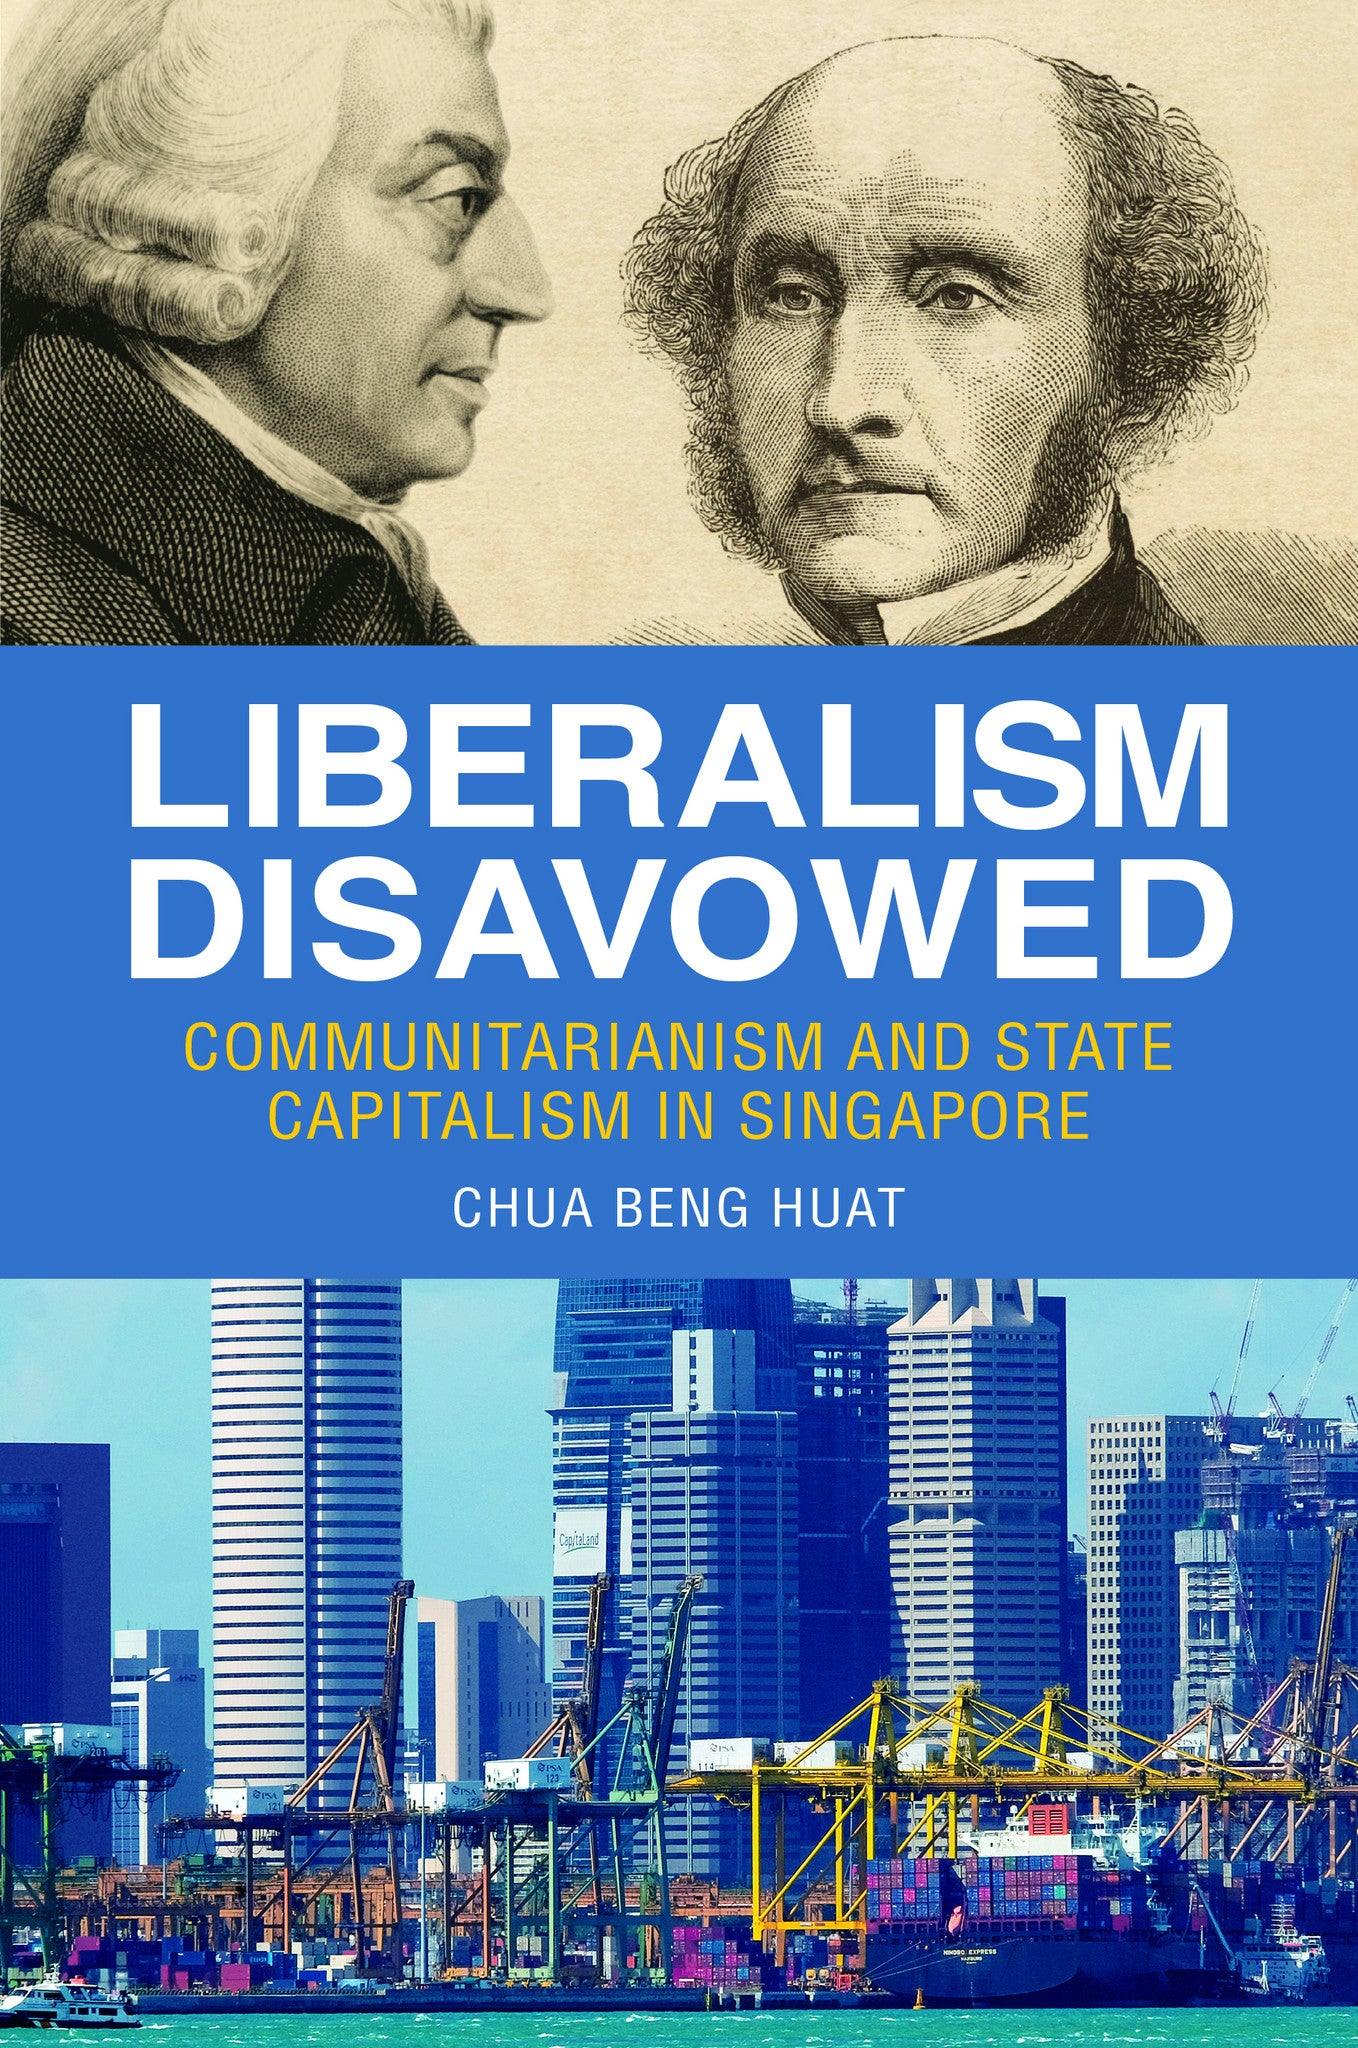 Liberalism Disavowed: Communitarian and State Capitalism in Singapore